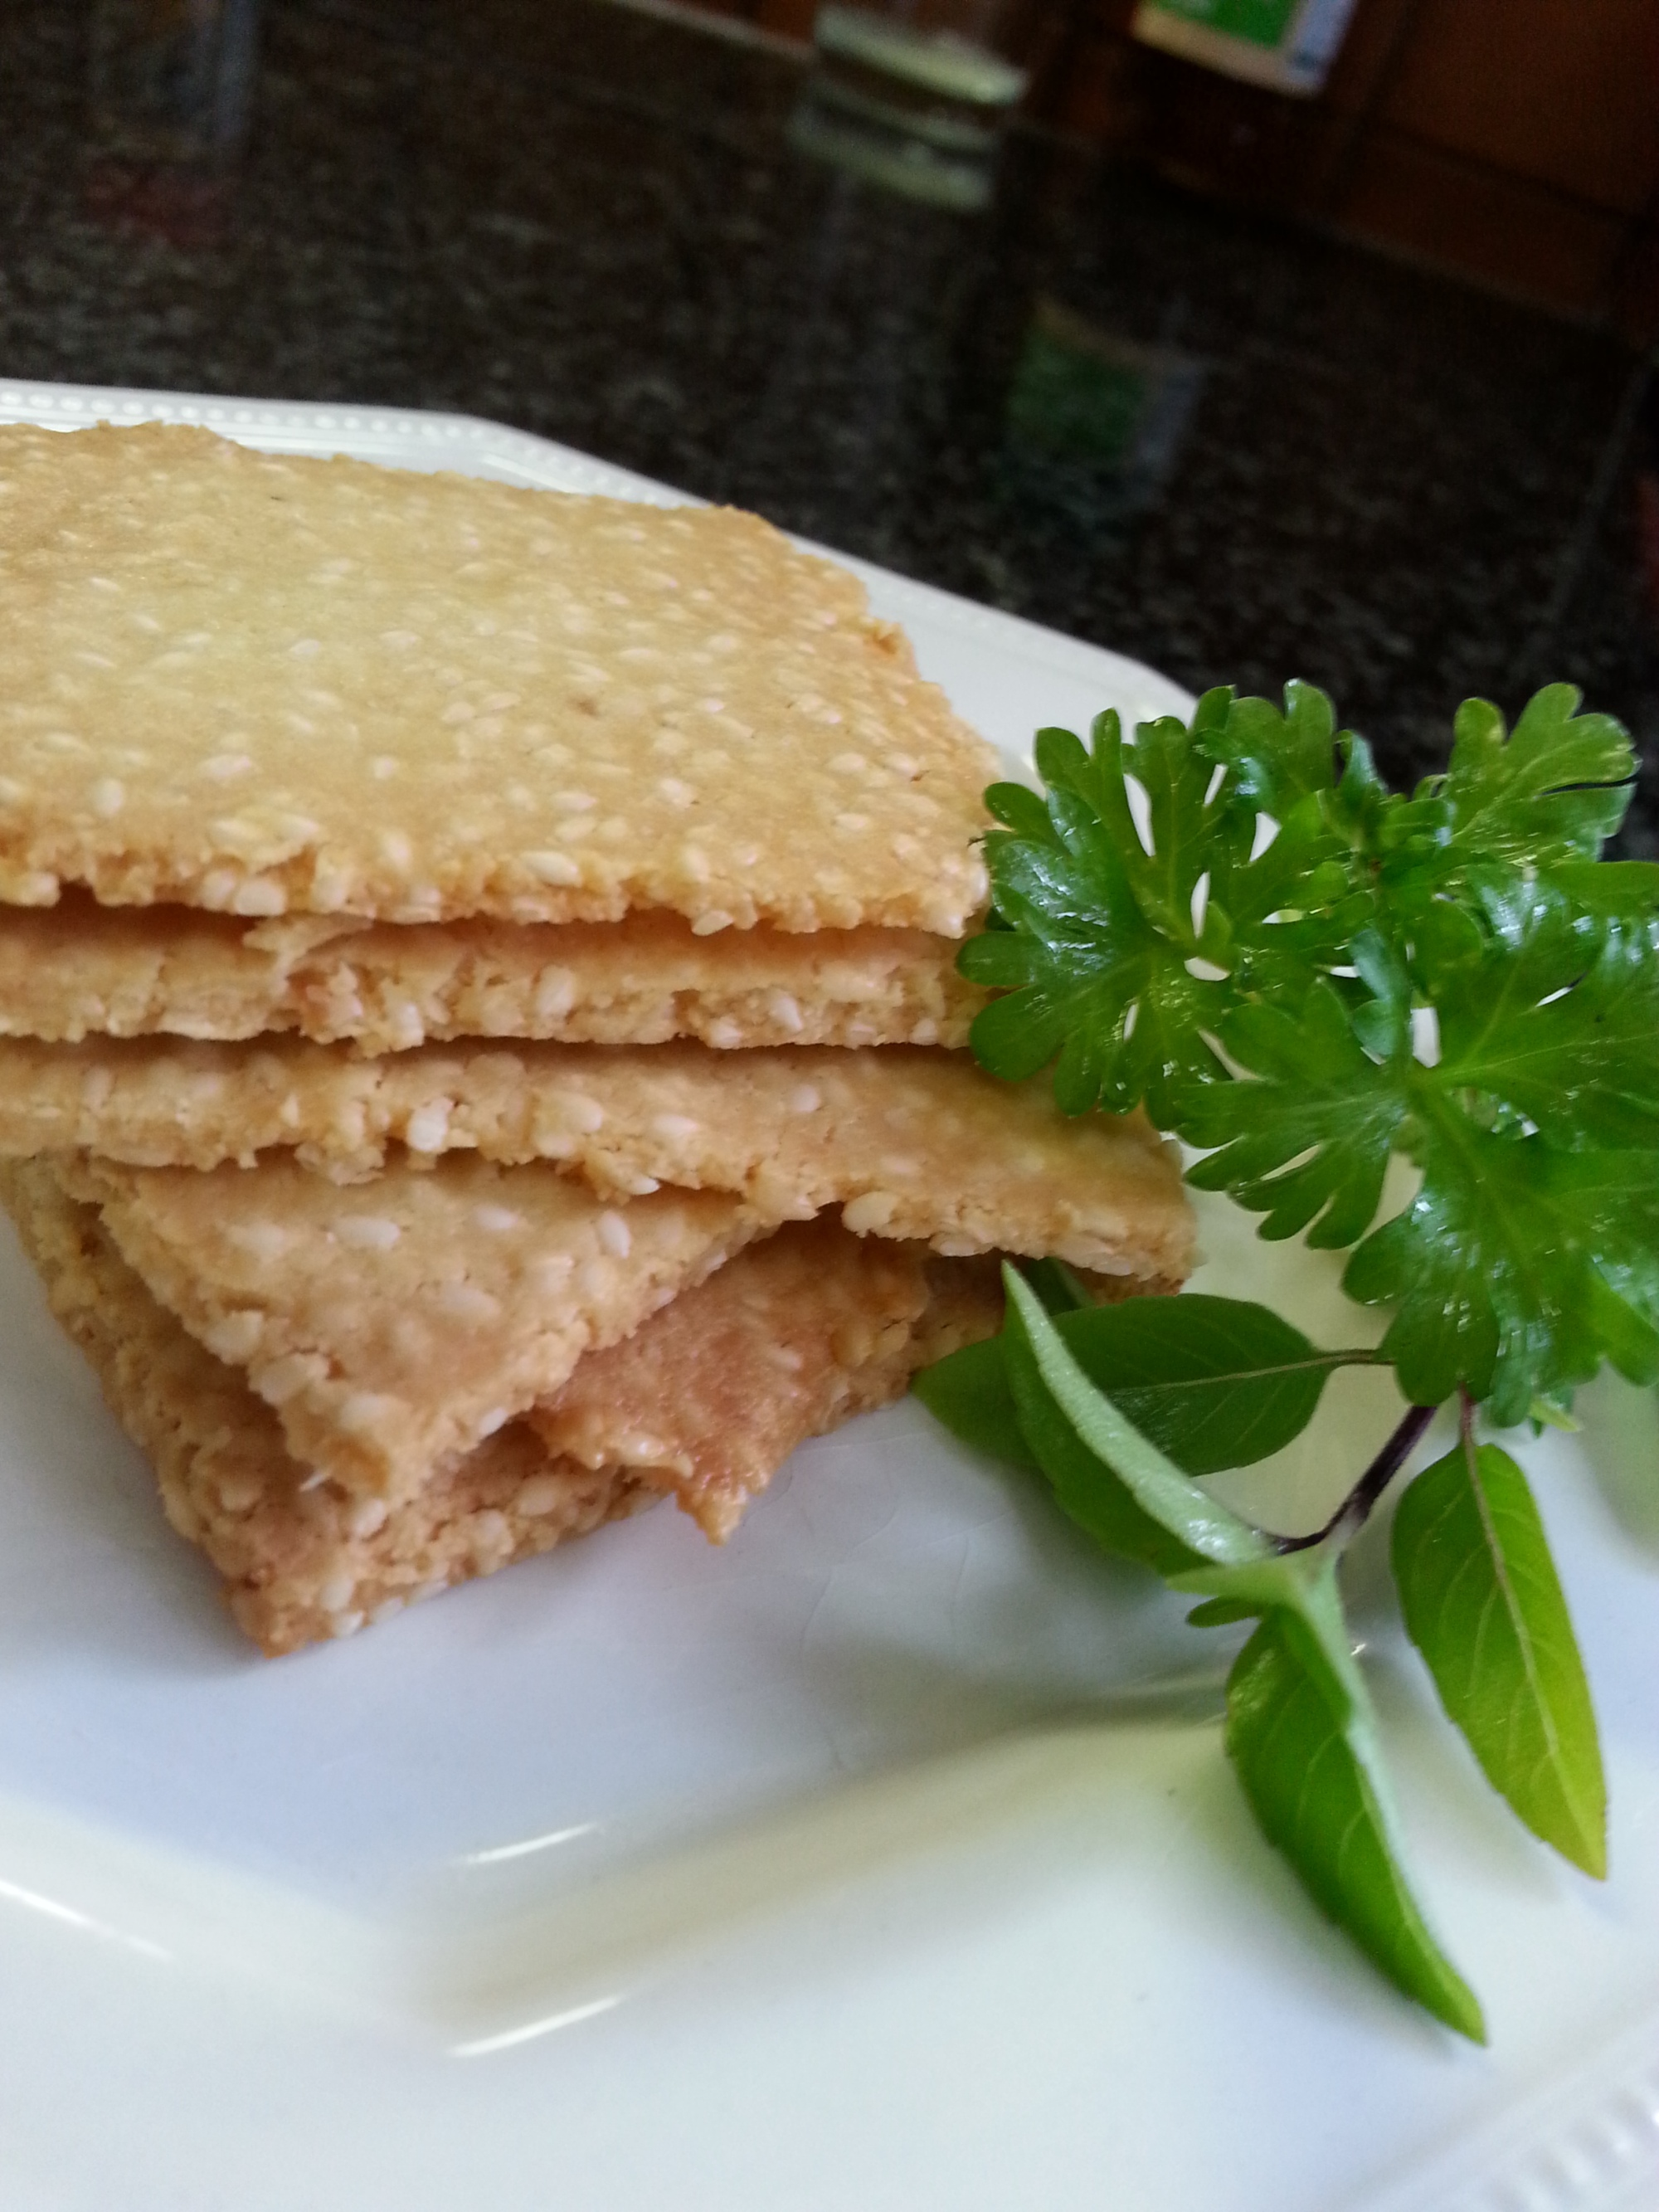 Sesame seed biscuits